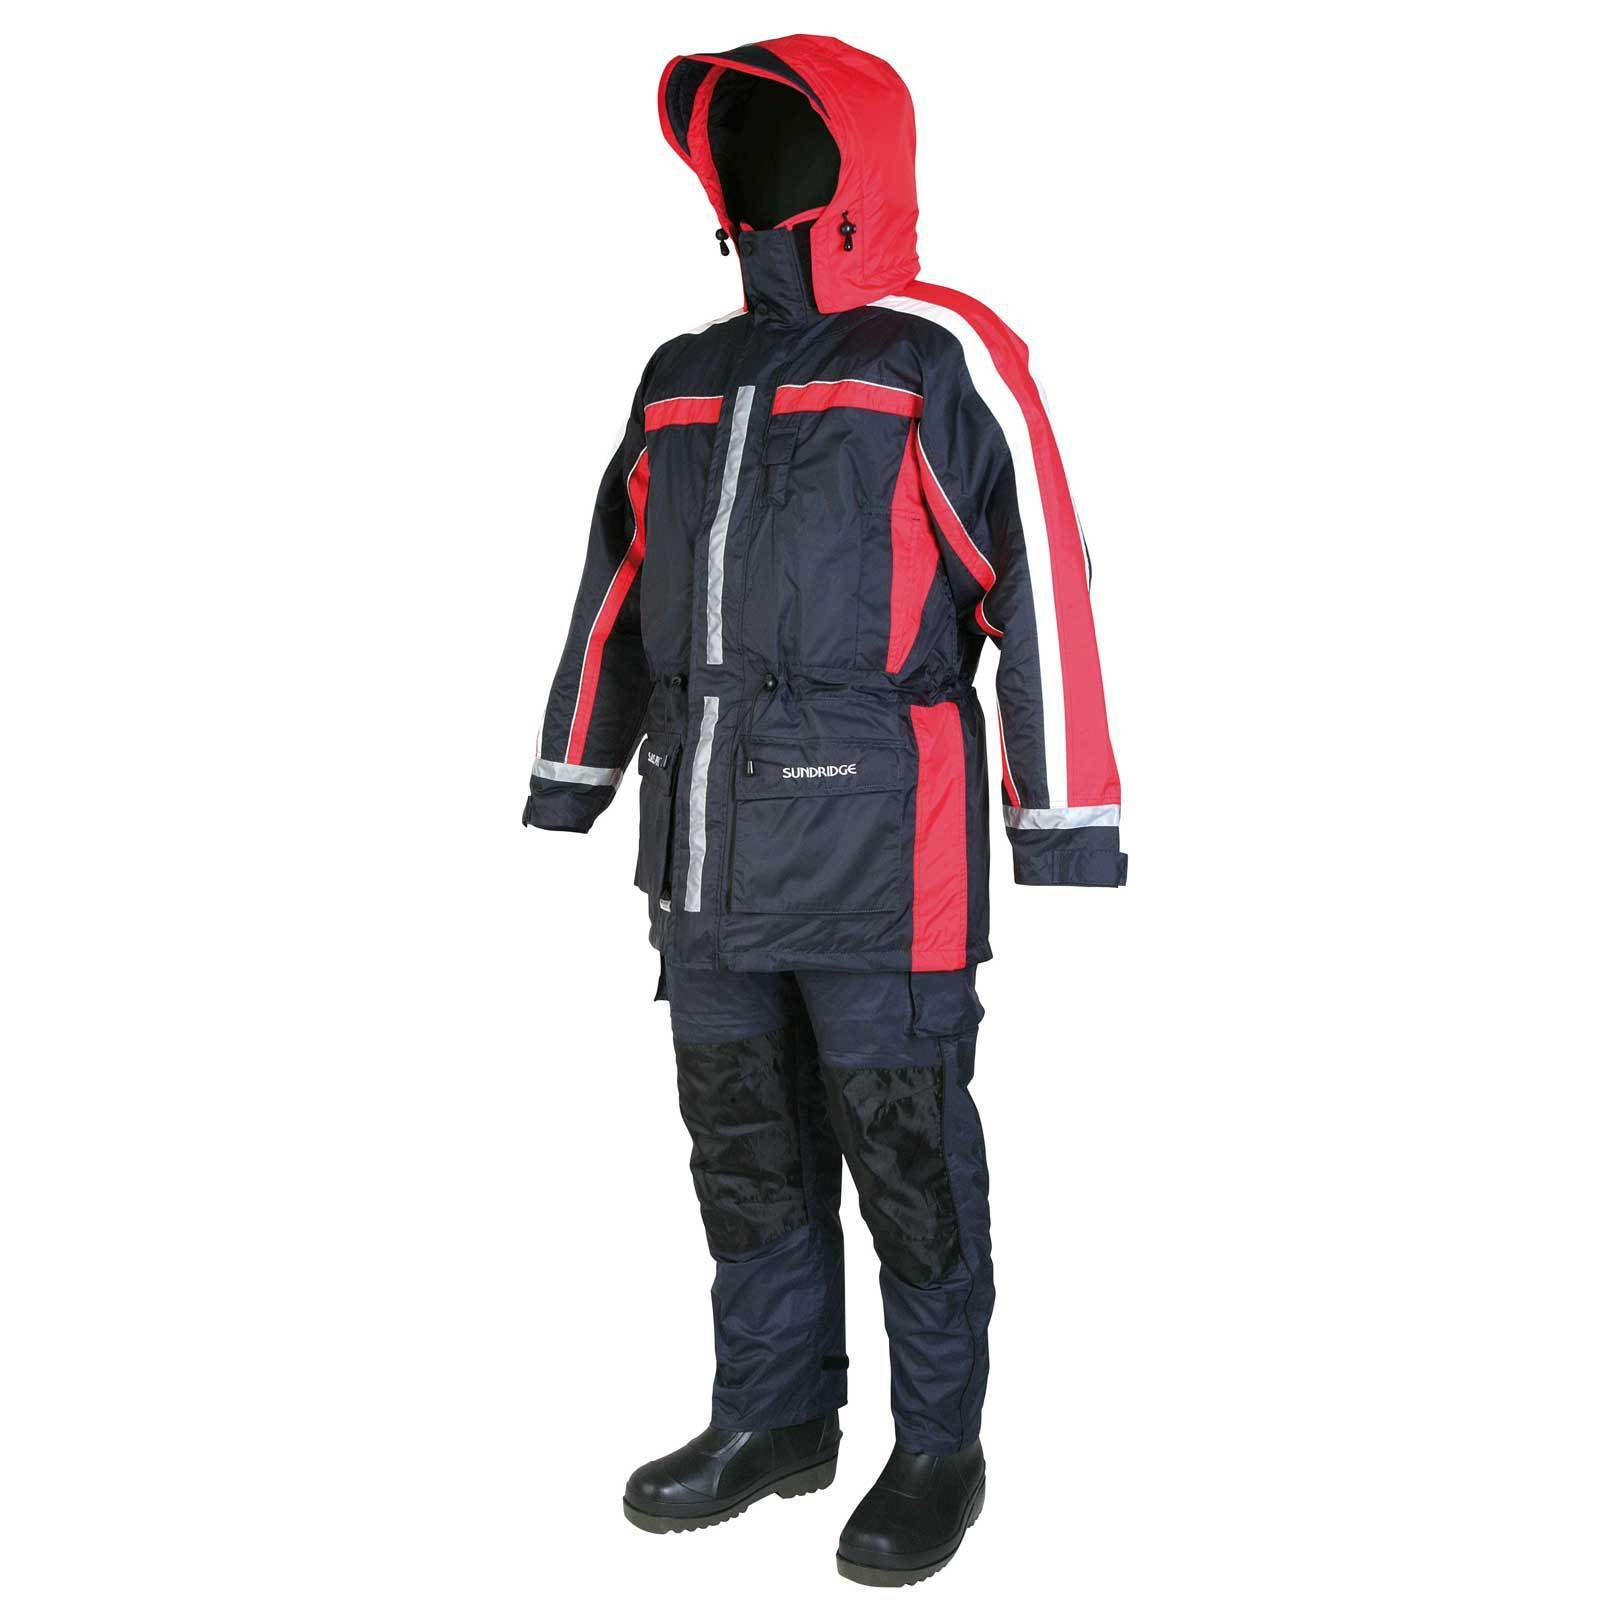 Sundridge Sundridge Sundridge Angeln Schwimmanzug Floating Suit - SAS Mk7 2-Teiler - Gr. S 42b1a3